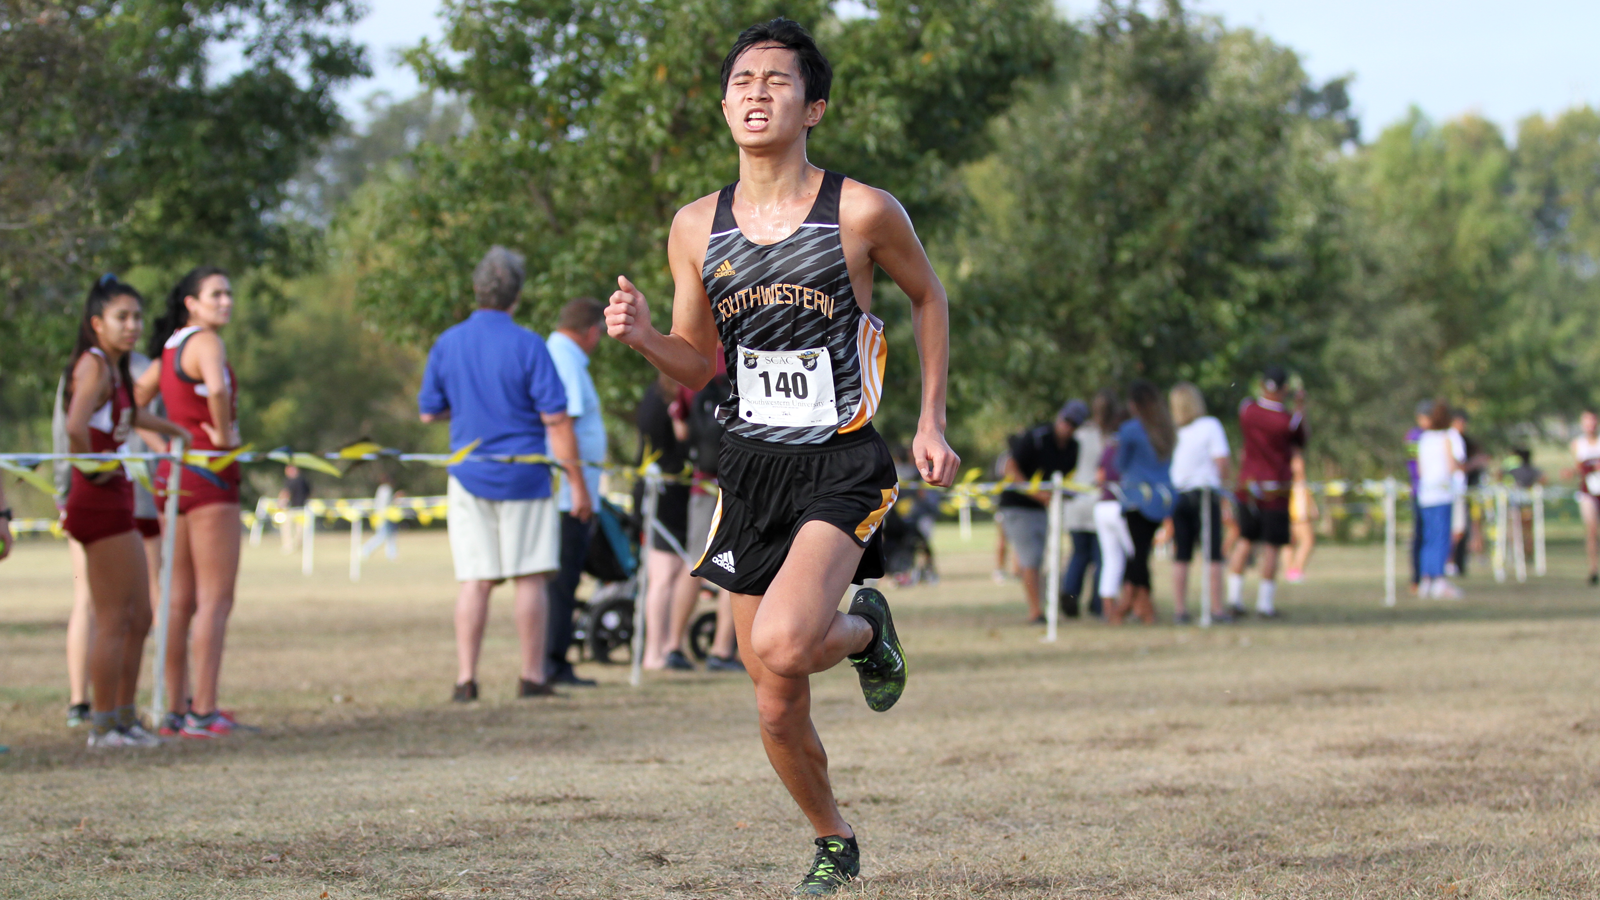 Im earns All-SCAC honors, Southwestern places fourth at SCAC Championships